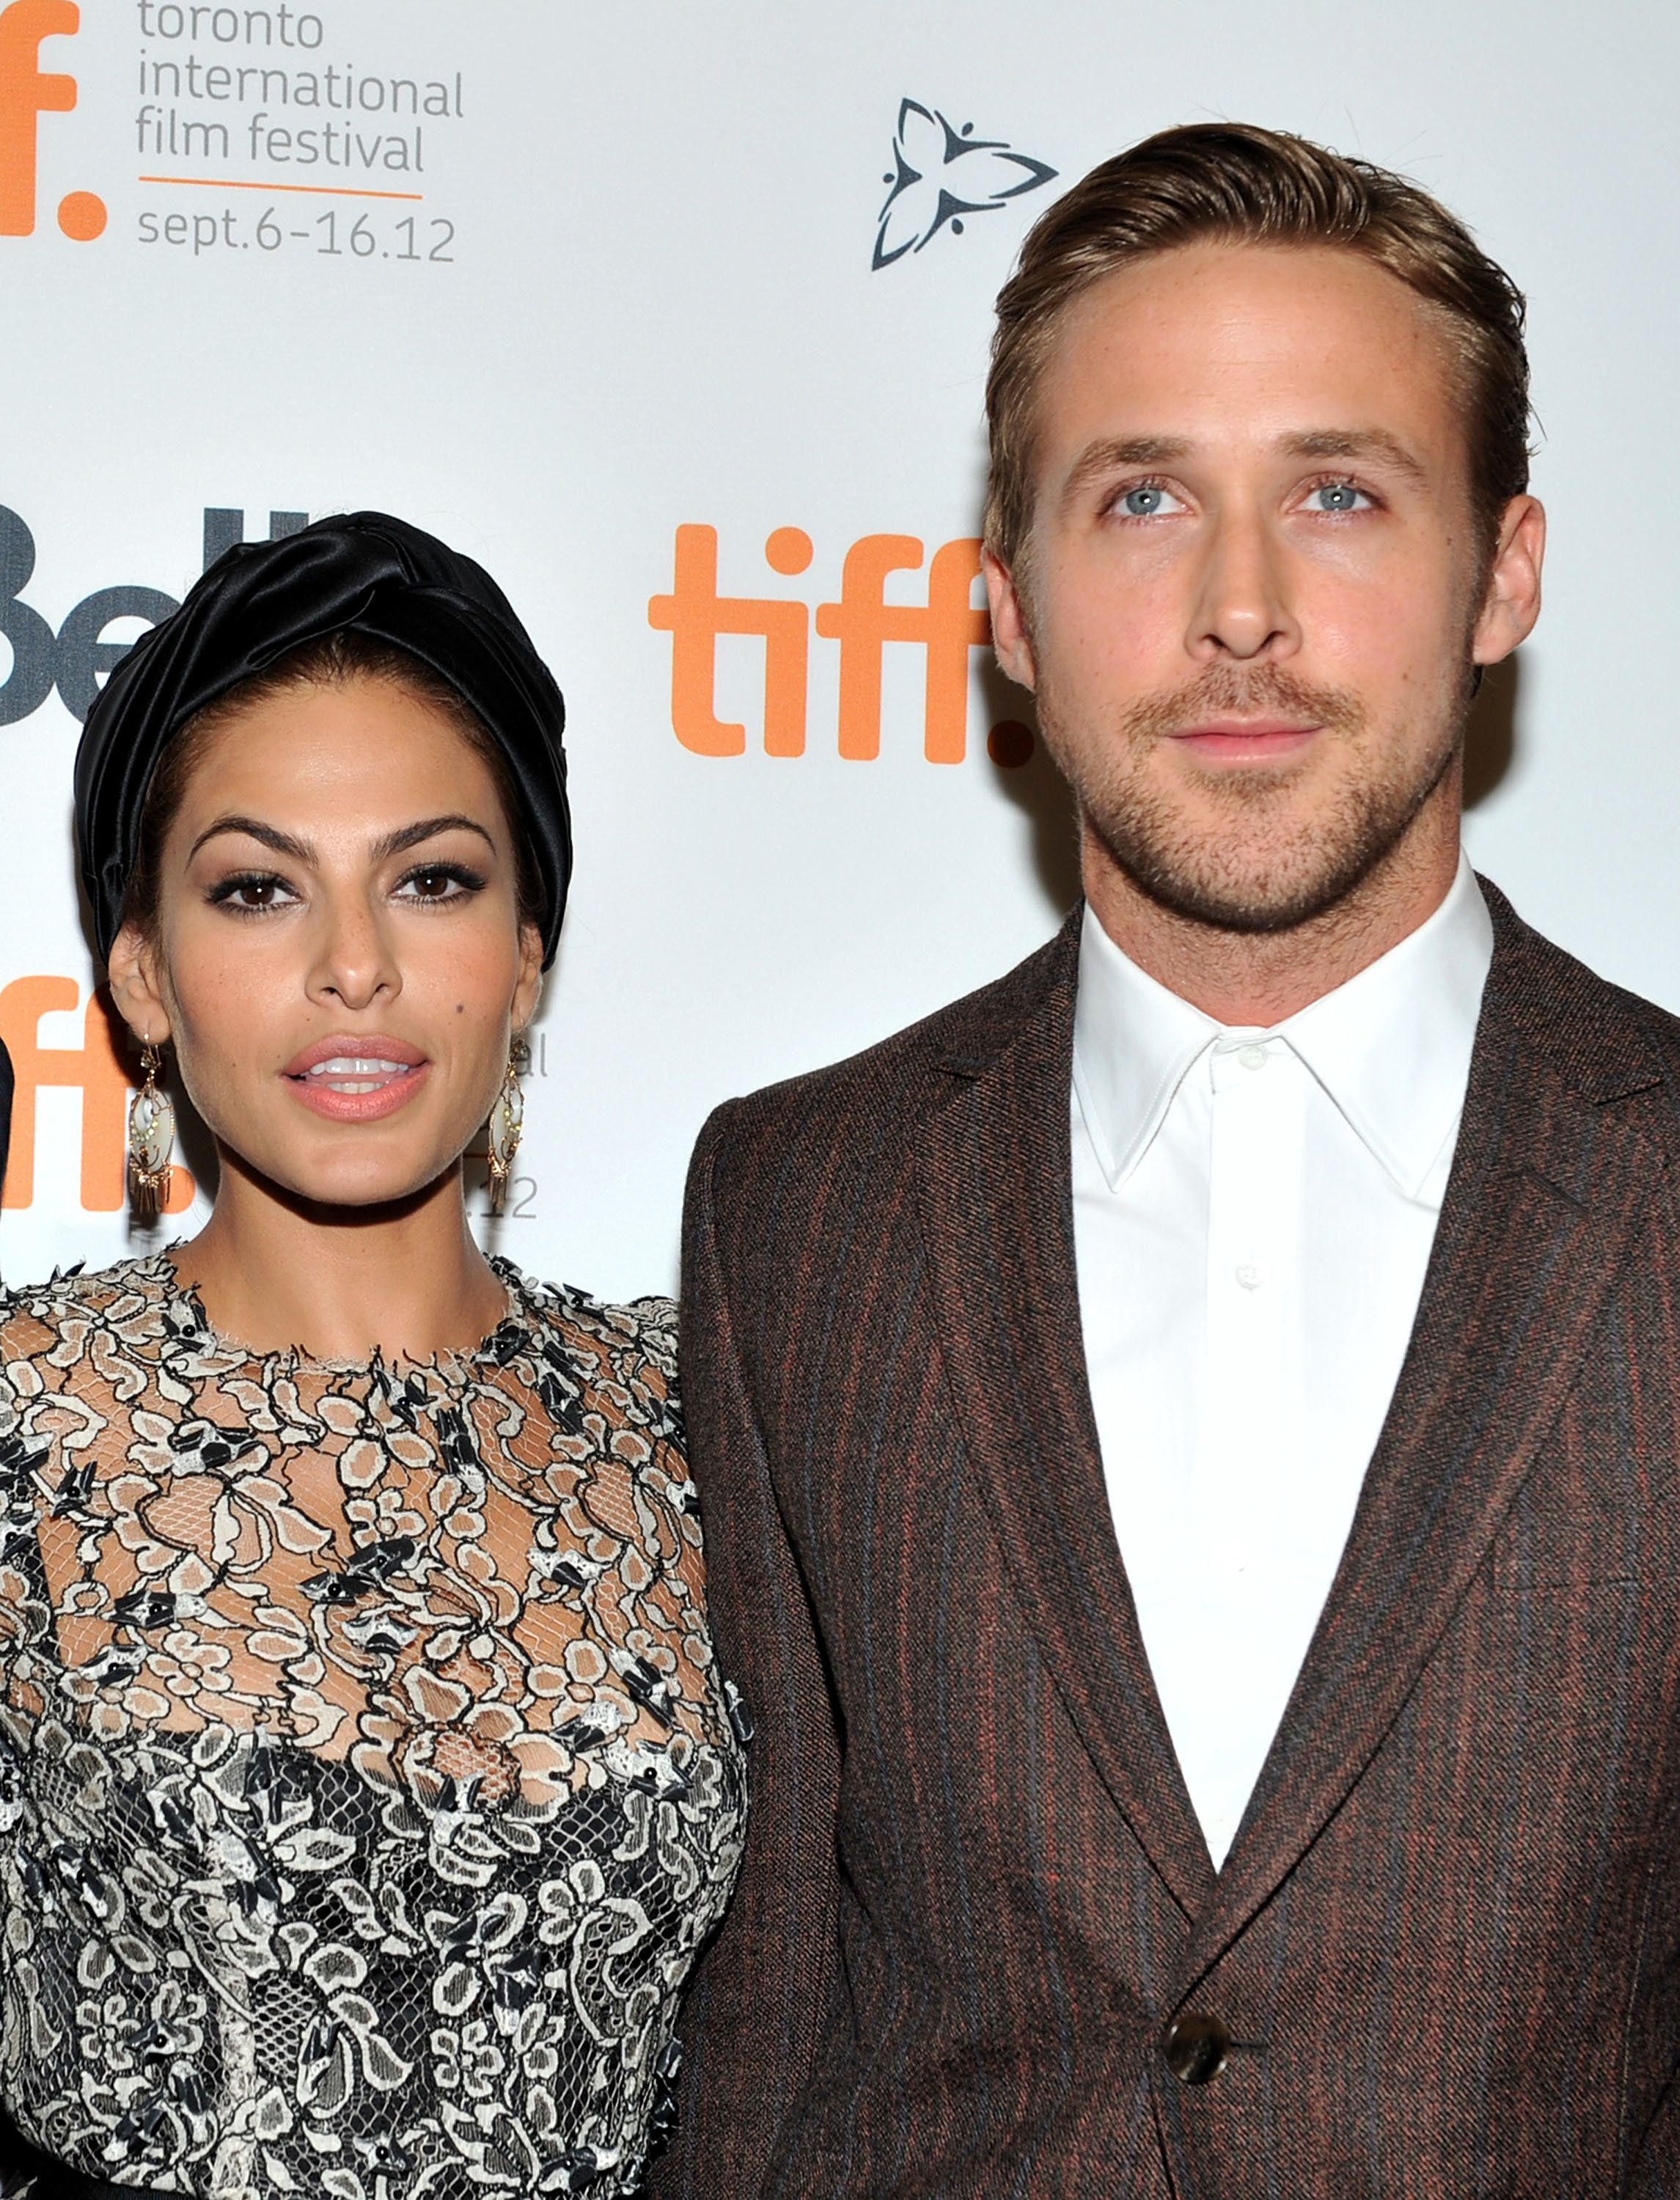 TORONTO, ON - SEPTEMBER 07:  Actors Eva Mendes and Ryan Gosling attend 'The Place Beyond The Pines' premiere during the 2012 Toronto International Film Festival at Princess of Wales Theatre on September 7, 2012 in Toronto, Canada.  (Photo by Sonia Recchia/Getty Images)